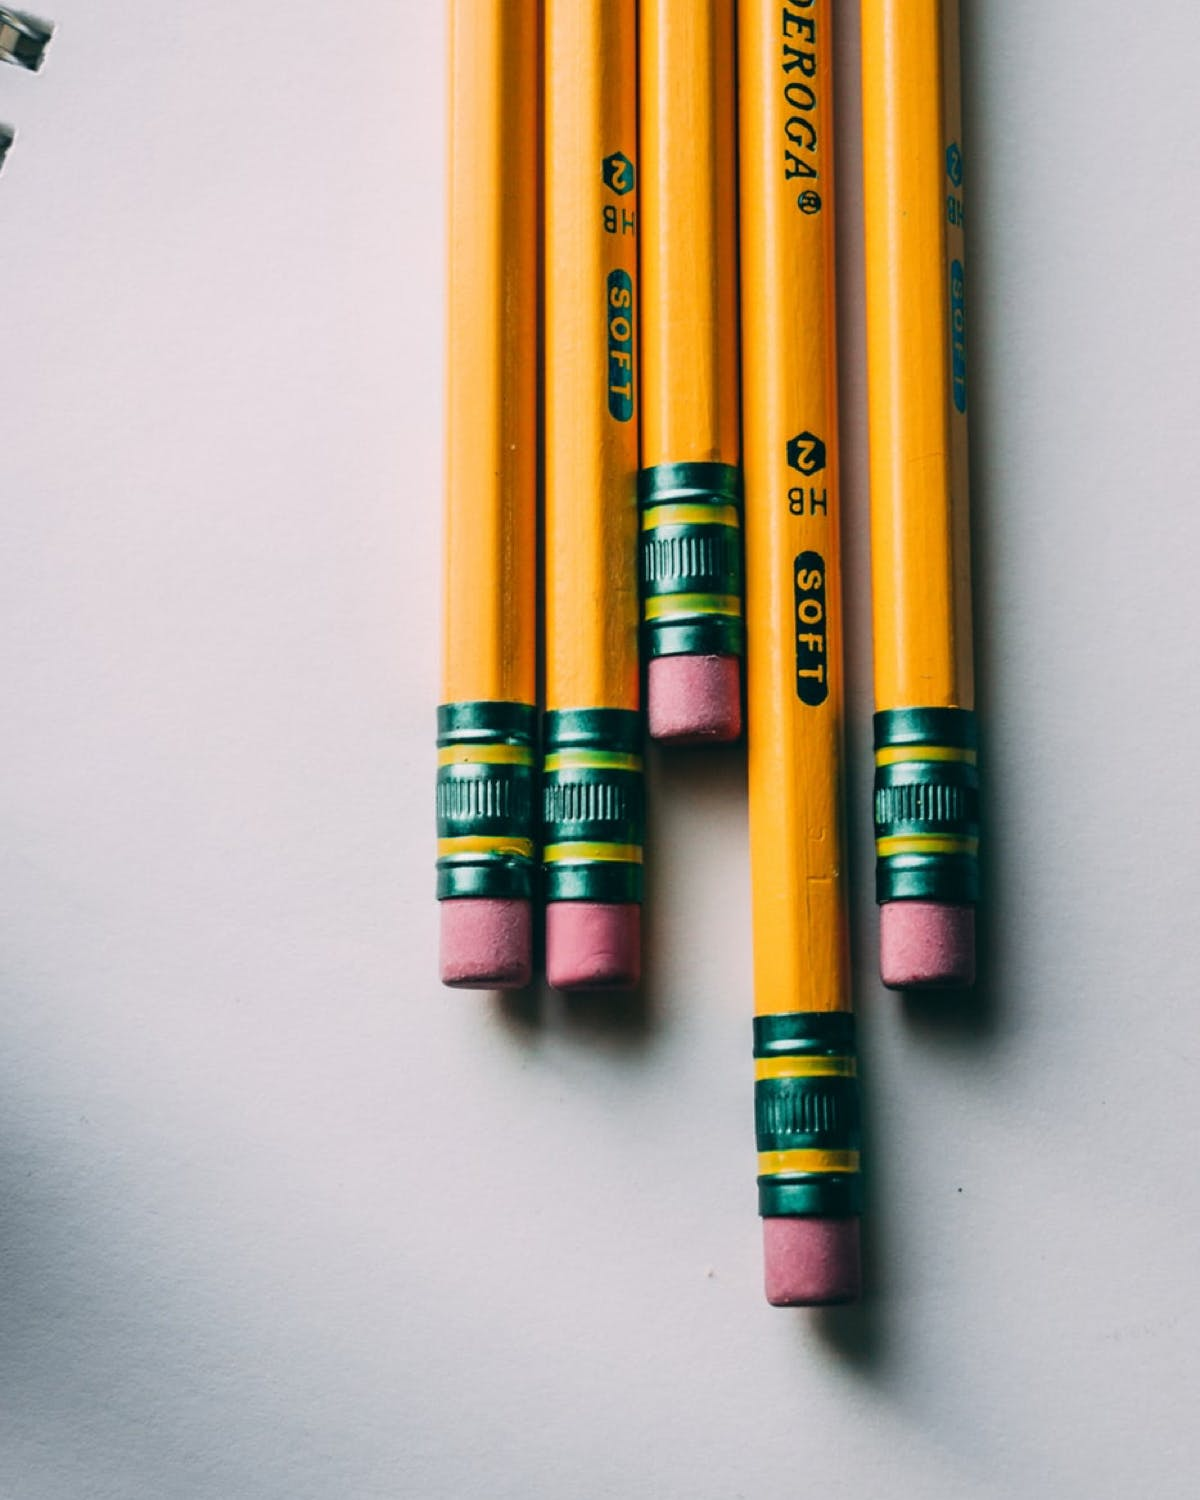 5 yellow pencils on white paper